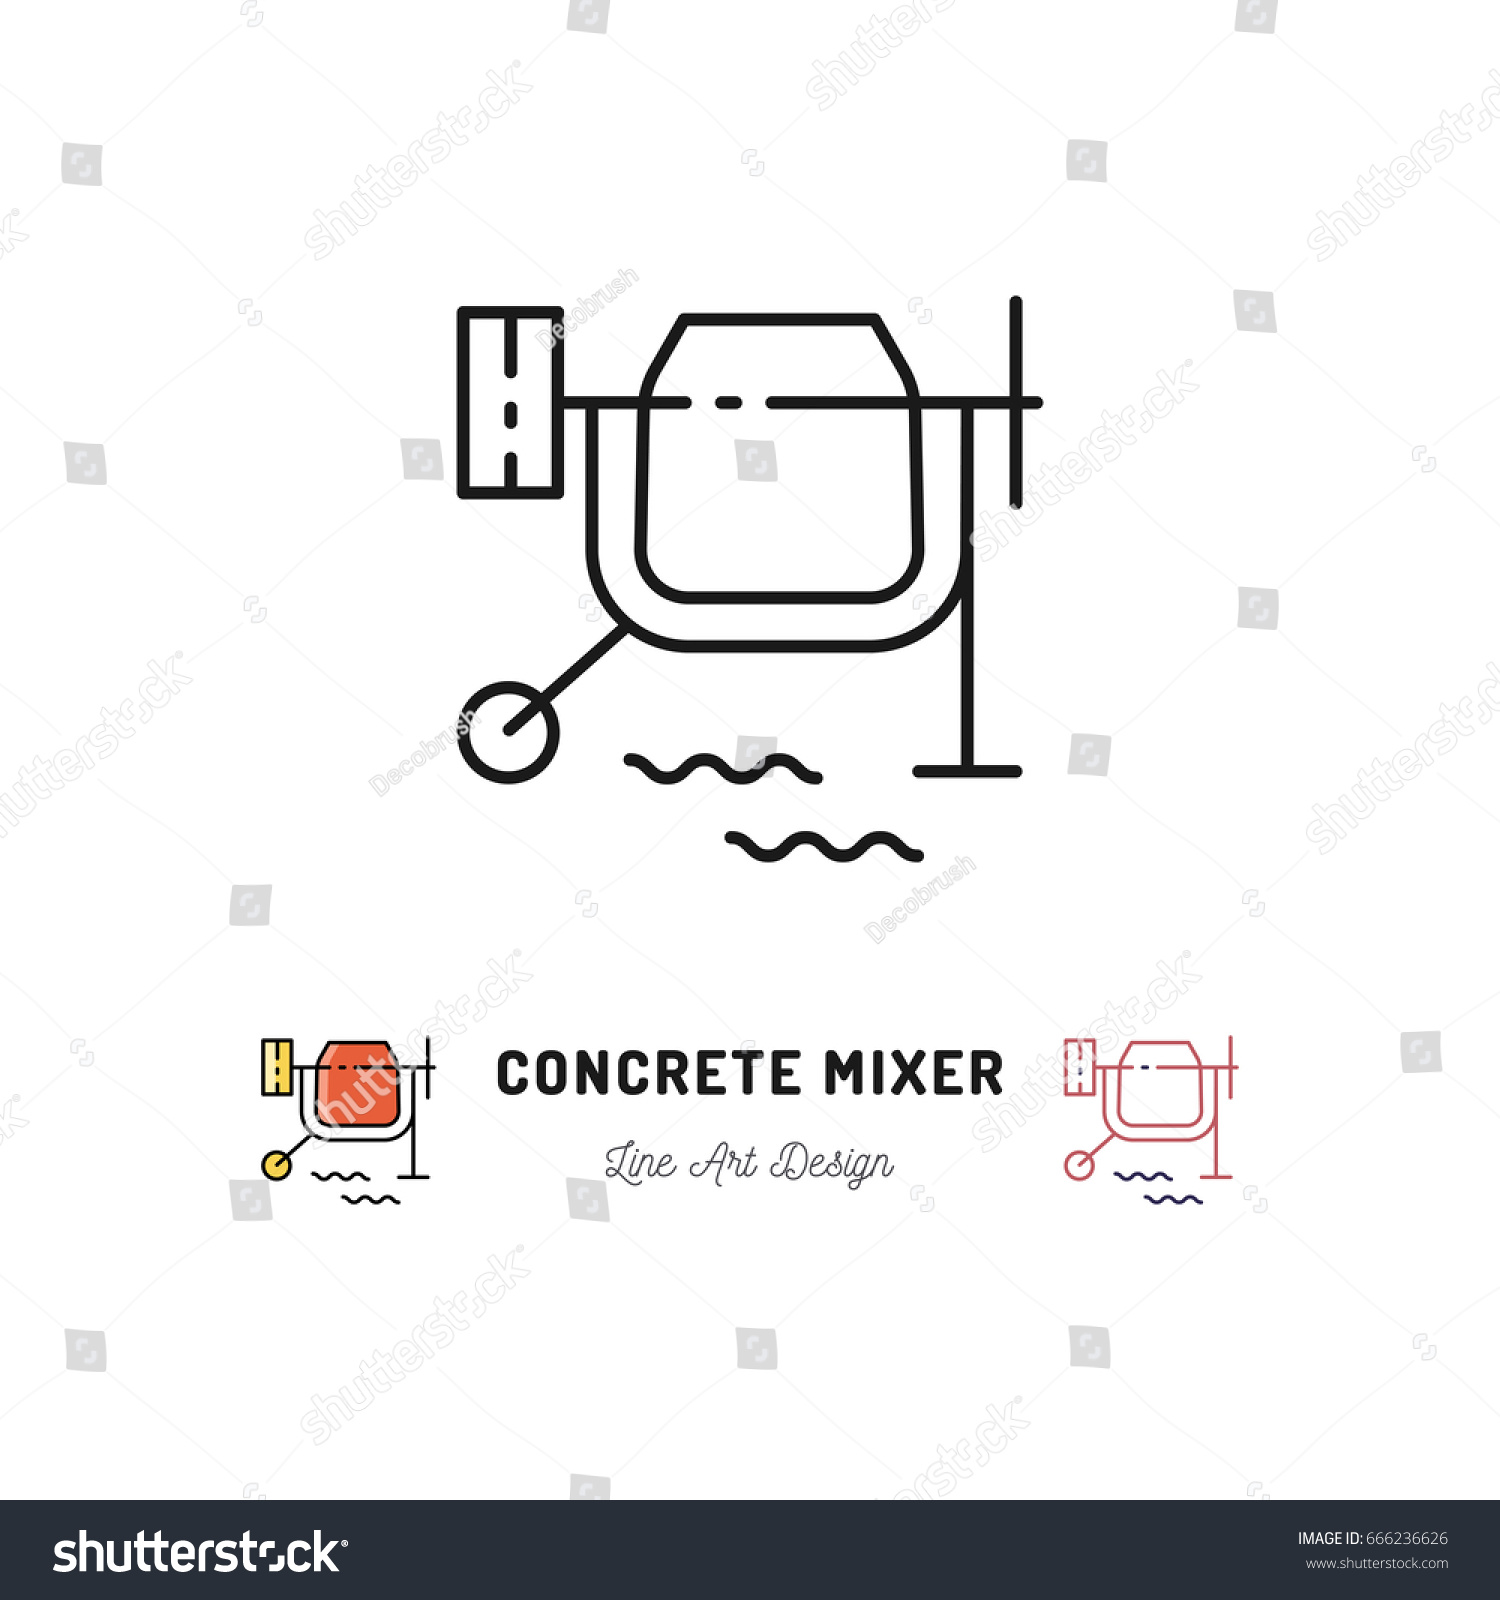 stock vector concrete mixer icon cement mixer sign vector thin line art symbol 666236626 concrete mixer icon cement mixer sign stock vector 666236626